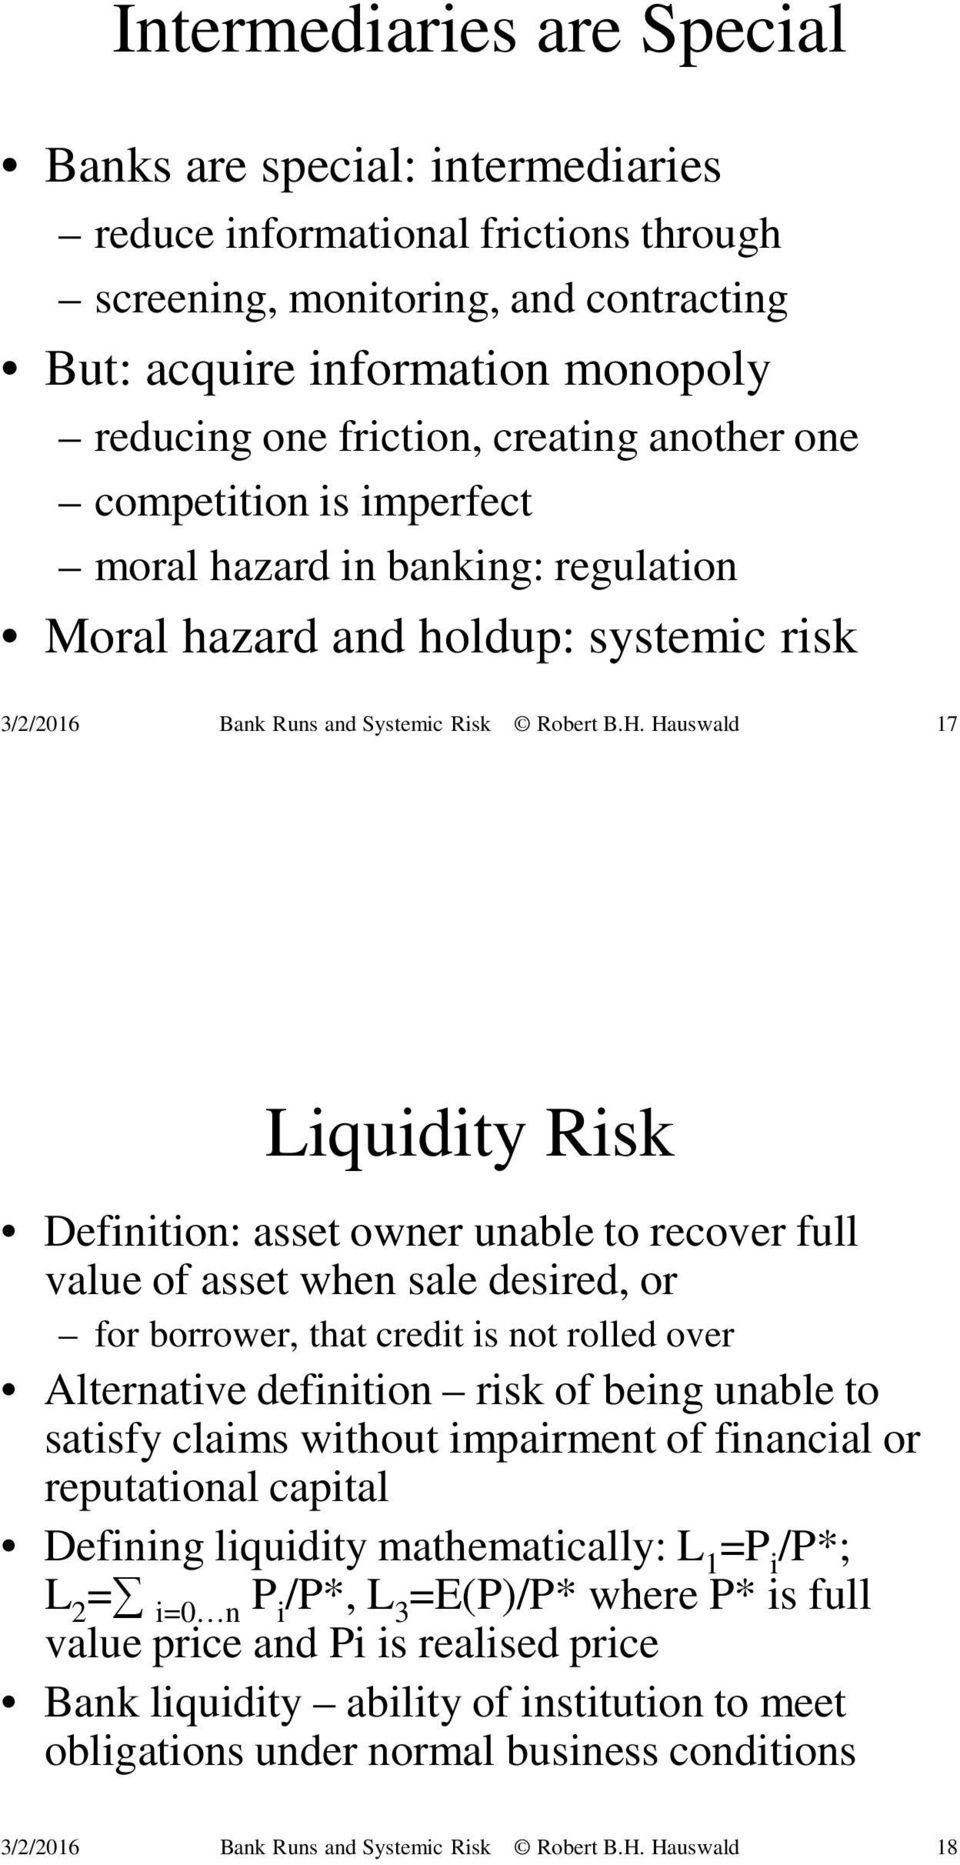 Hauswald 17 Liquidity Risk Definition: asset owner unable to recover full value of asset when sale desired, or for borrower, that credit is not rolled over Alternative definition risk of being unable